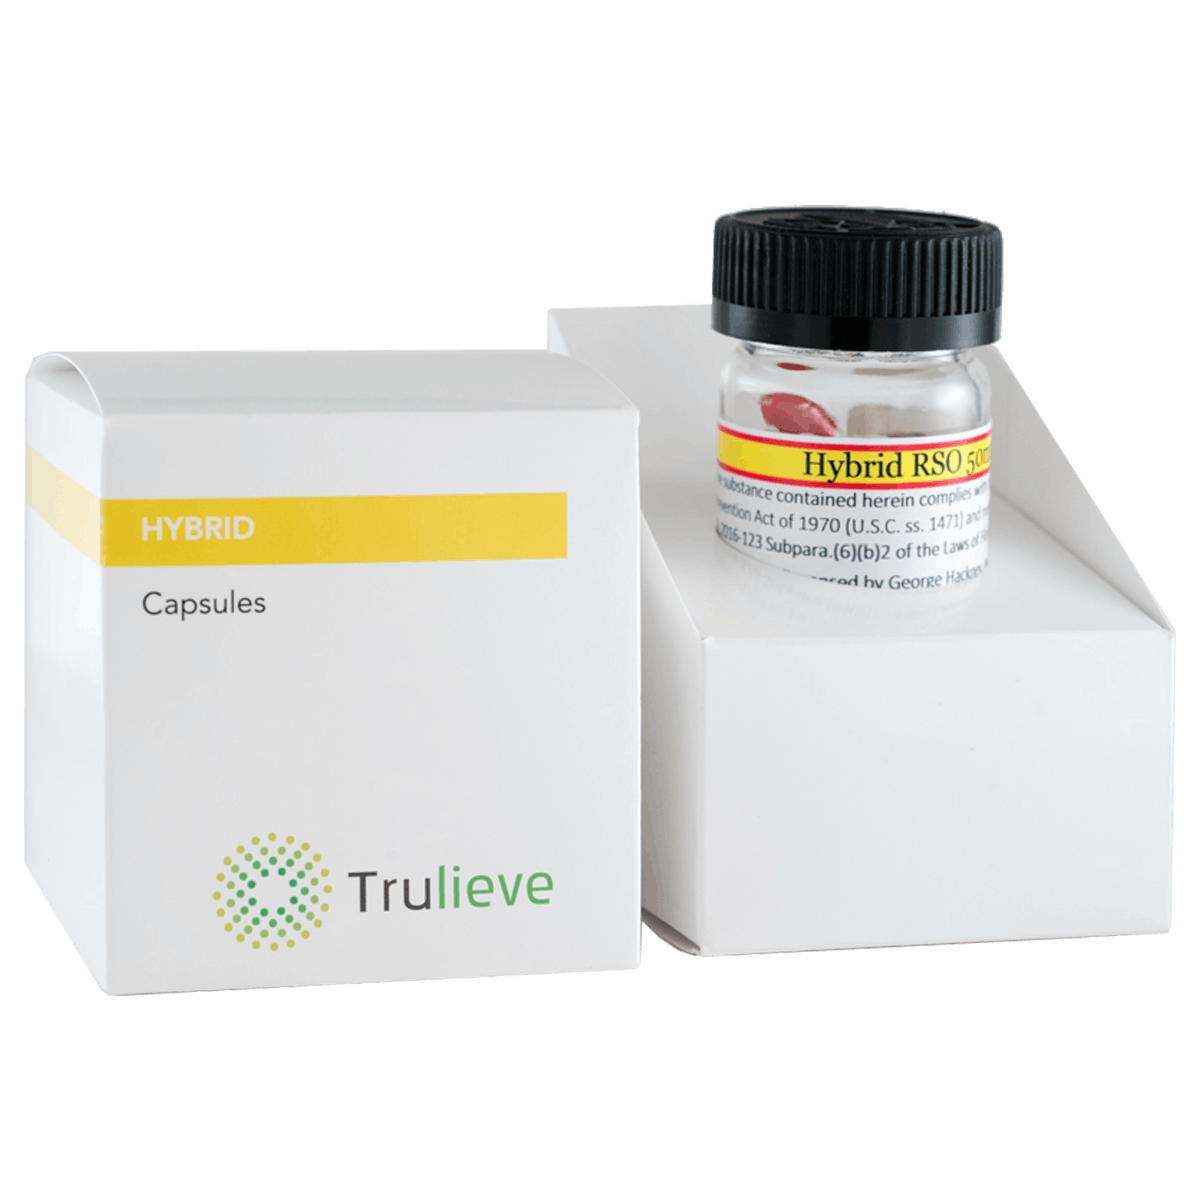 edible-trulieve-capsule-bottle-25ct-50mg-hybrid